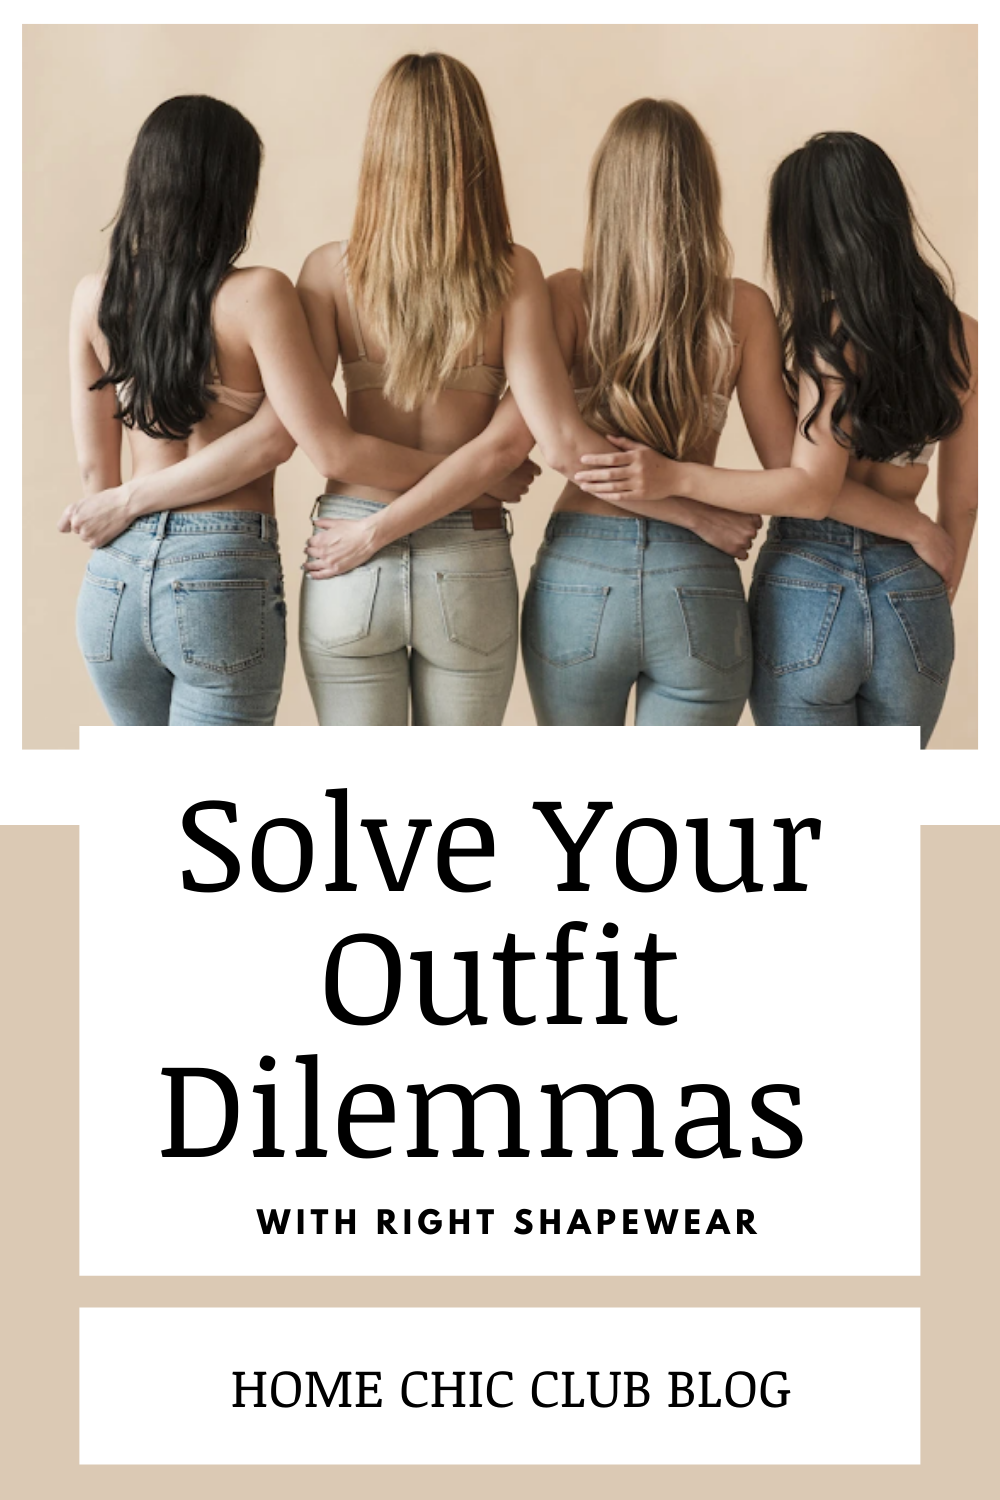 How Shapewear Can Solve Your Outfit Dilemmas